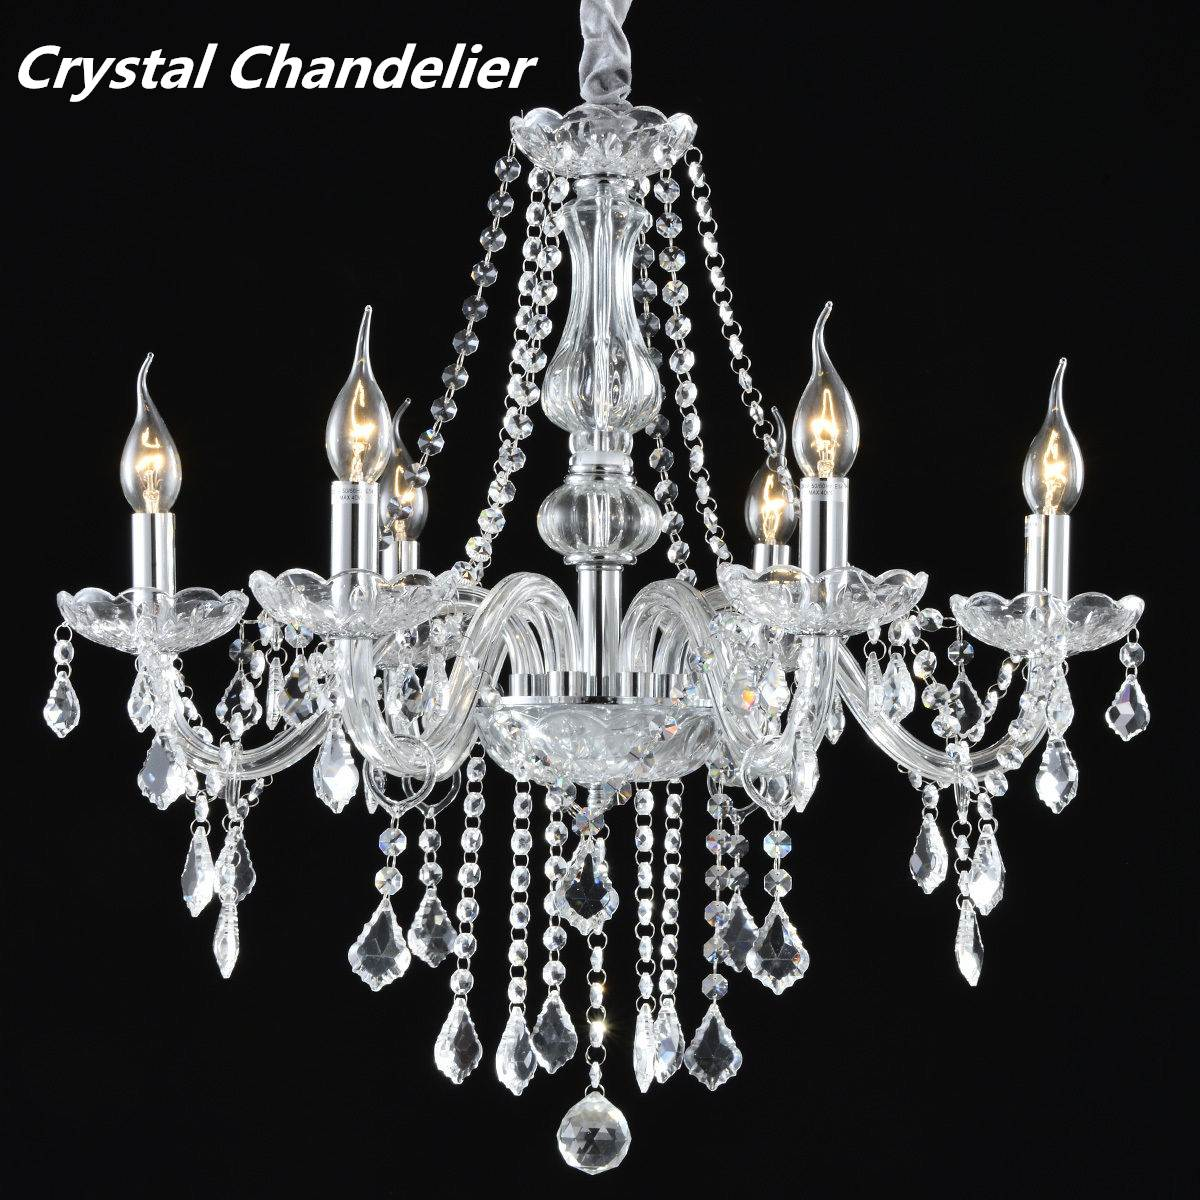 Modern Crystal Glass Pendant Lights Hanging Lamp Fixture 6 Arms Living Room Bedroom Indoor Lighting Home Decor furnishings brief modern k9 crystal flower pendant light fixture european fashion home deco living room diy glass pendant lamp